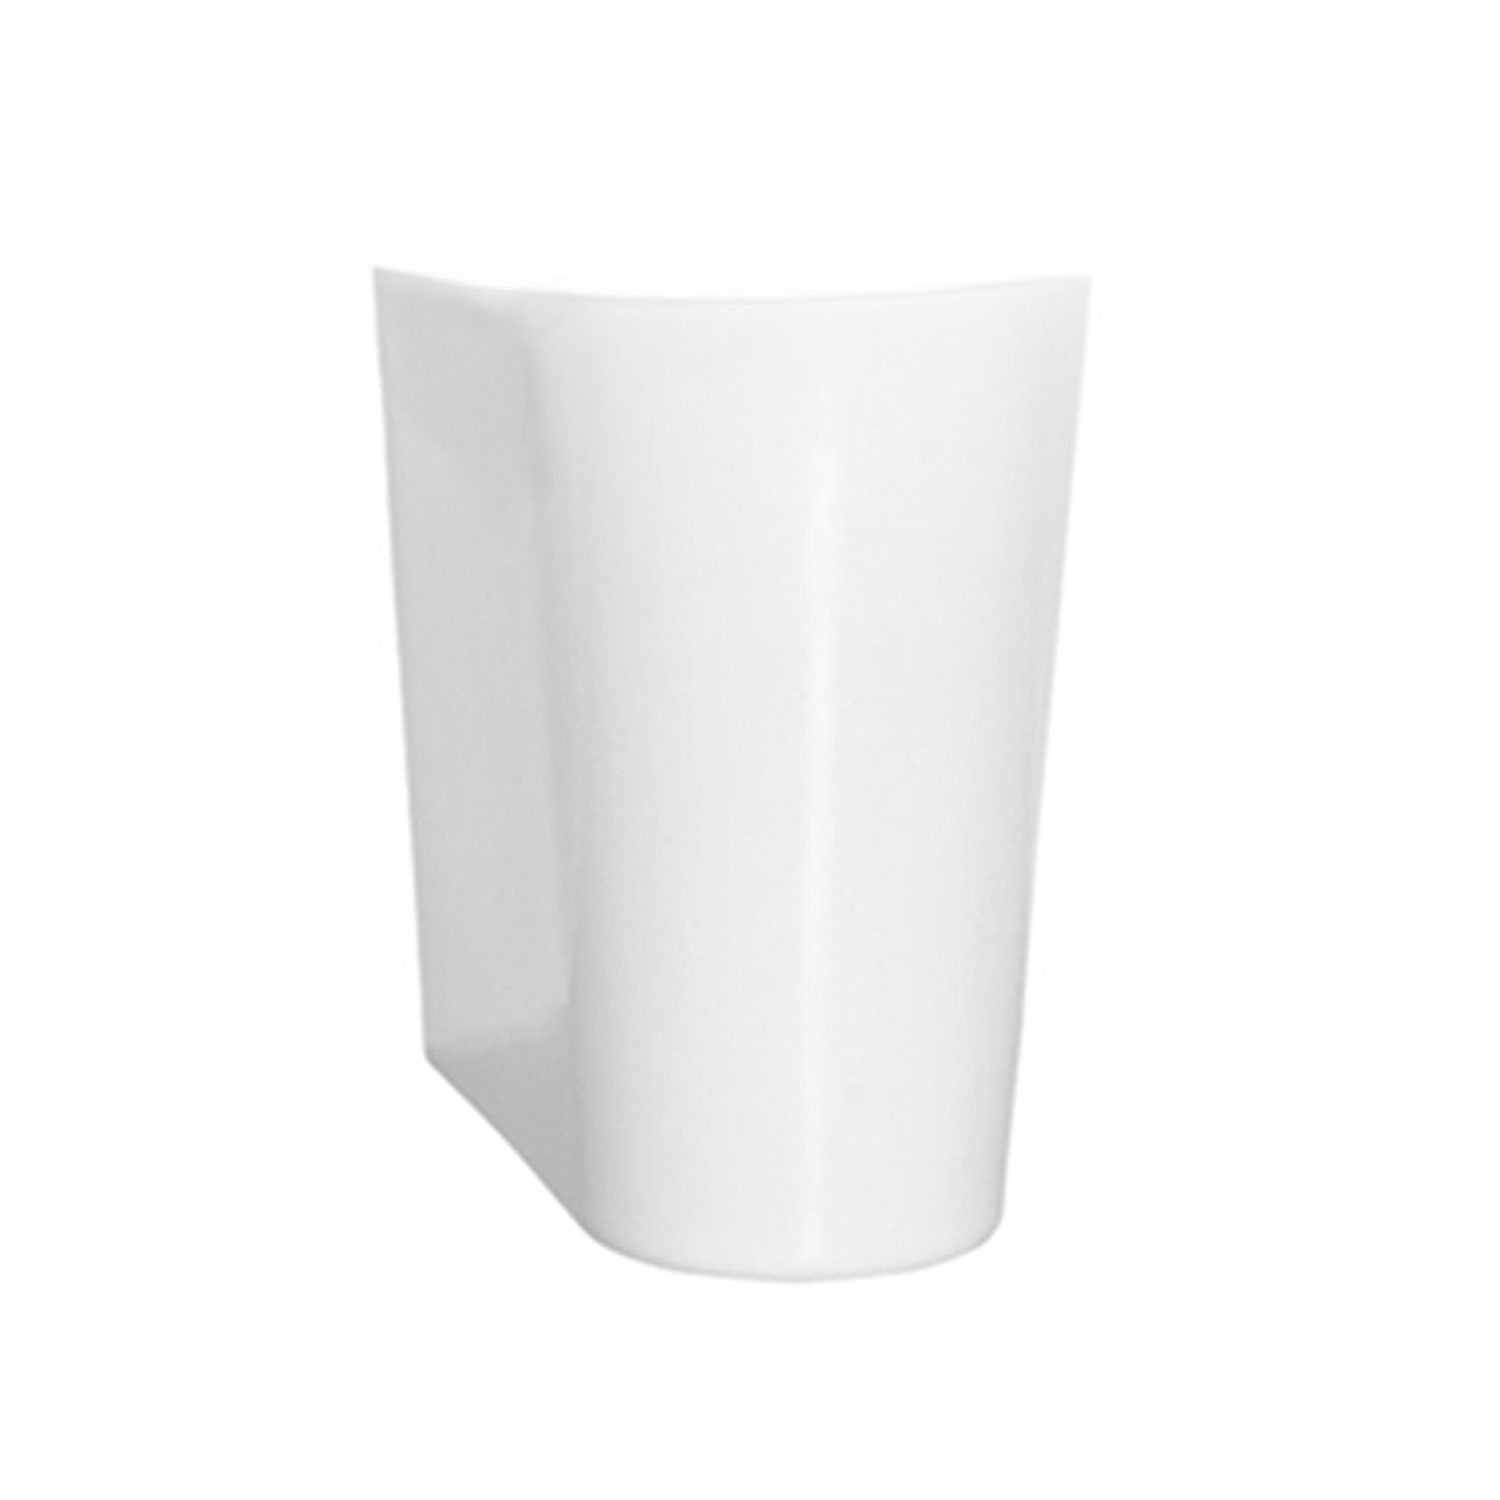 Vitra S50 Round Basin and Large Semi Pedestal 650mm Wide 1 Tap Hole